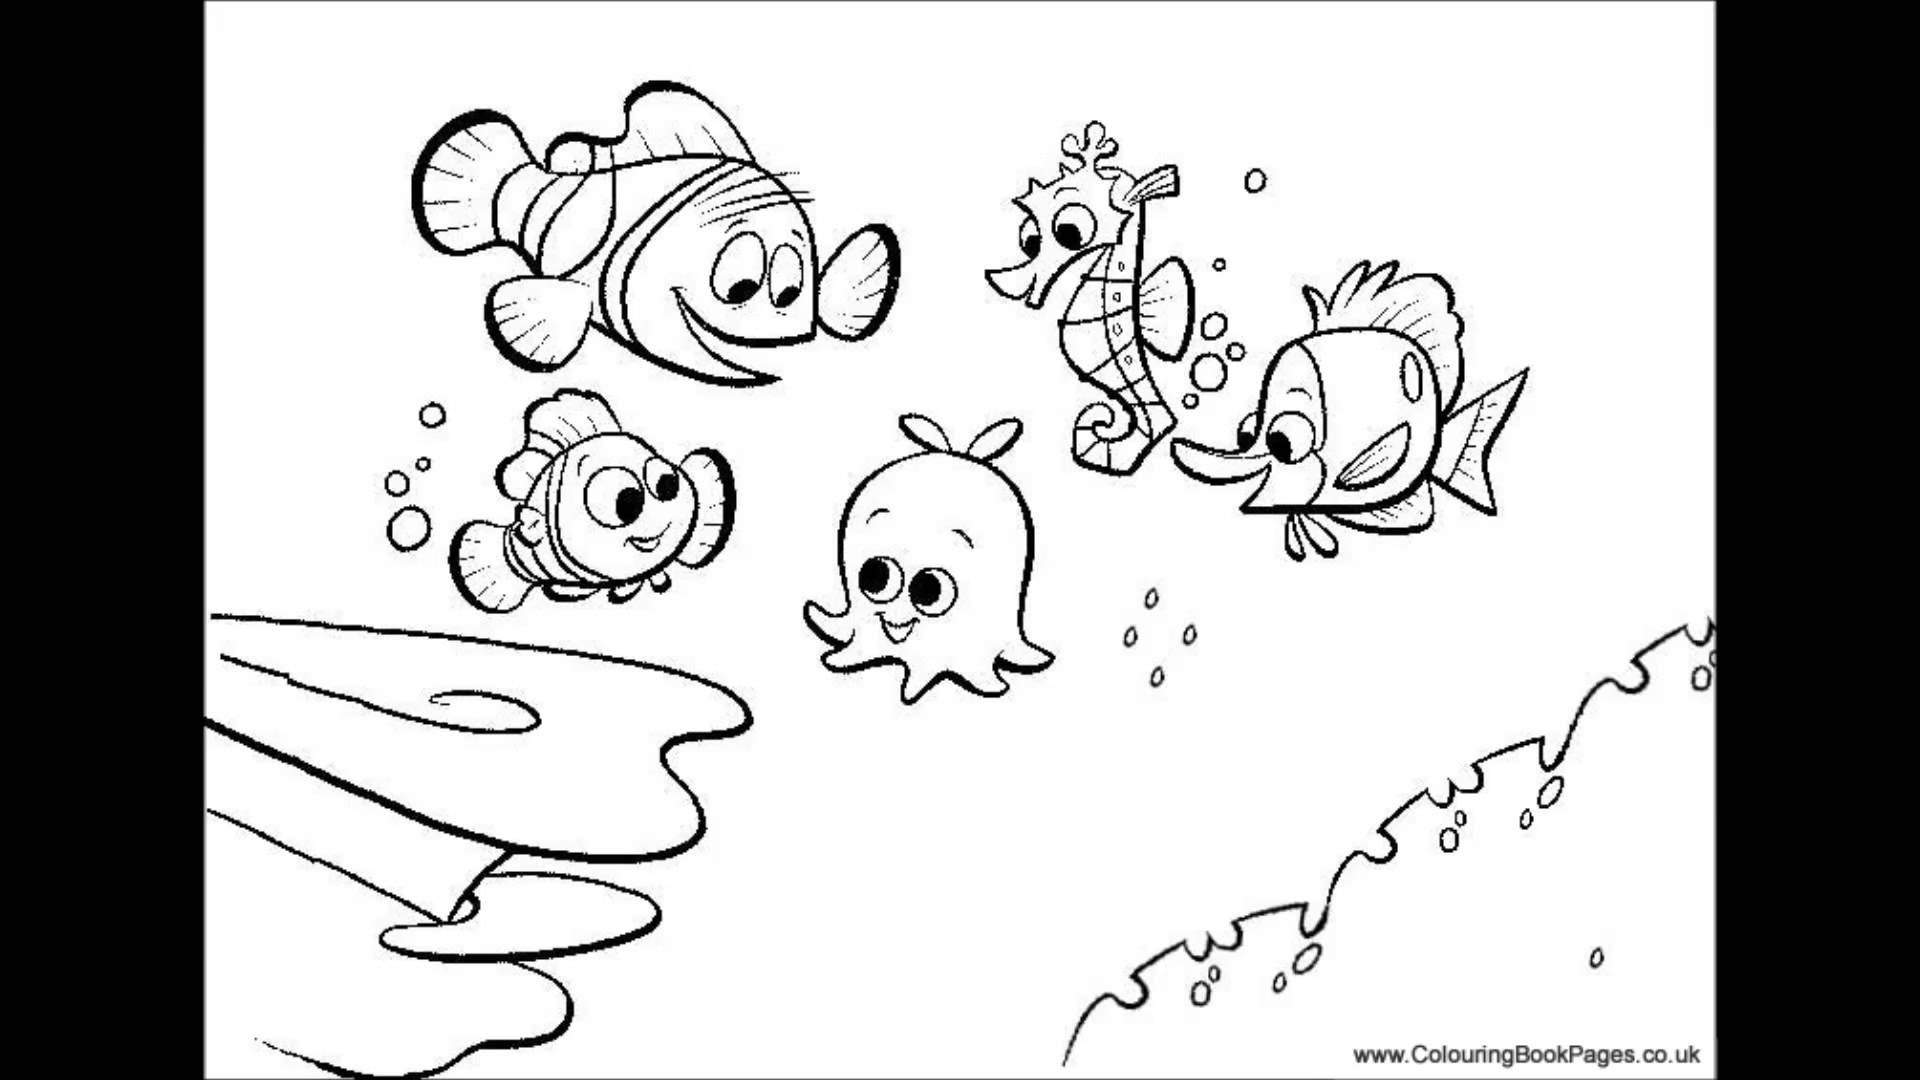 1920x1080 Aquarium Finding Nemo Coloring Pages For Kids Beautiful Finding